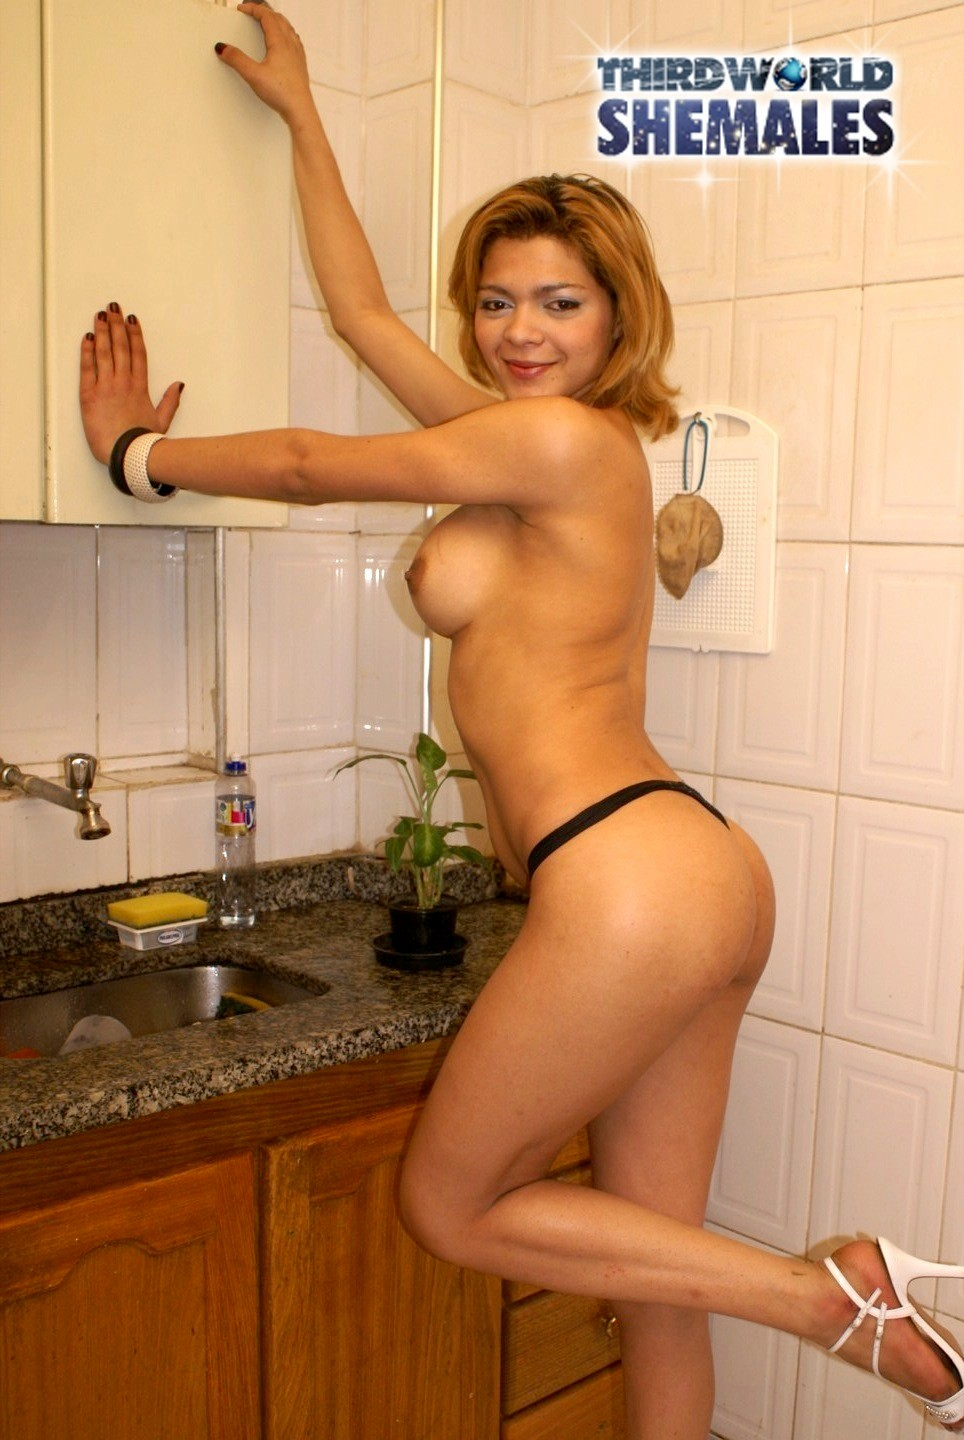 Gizelle Is A Massive Brazilian Blonde With A Tight Body, Massive Tit